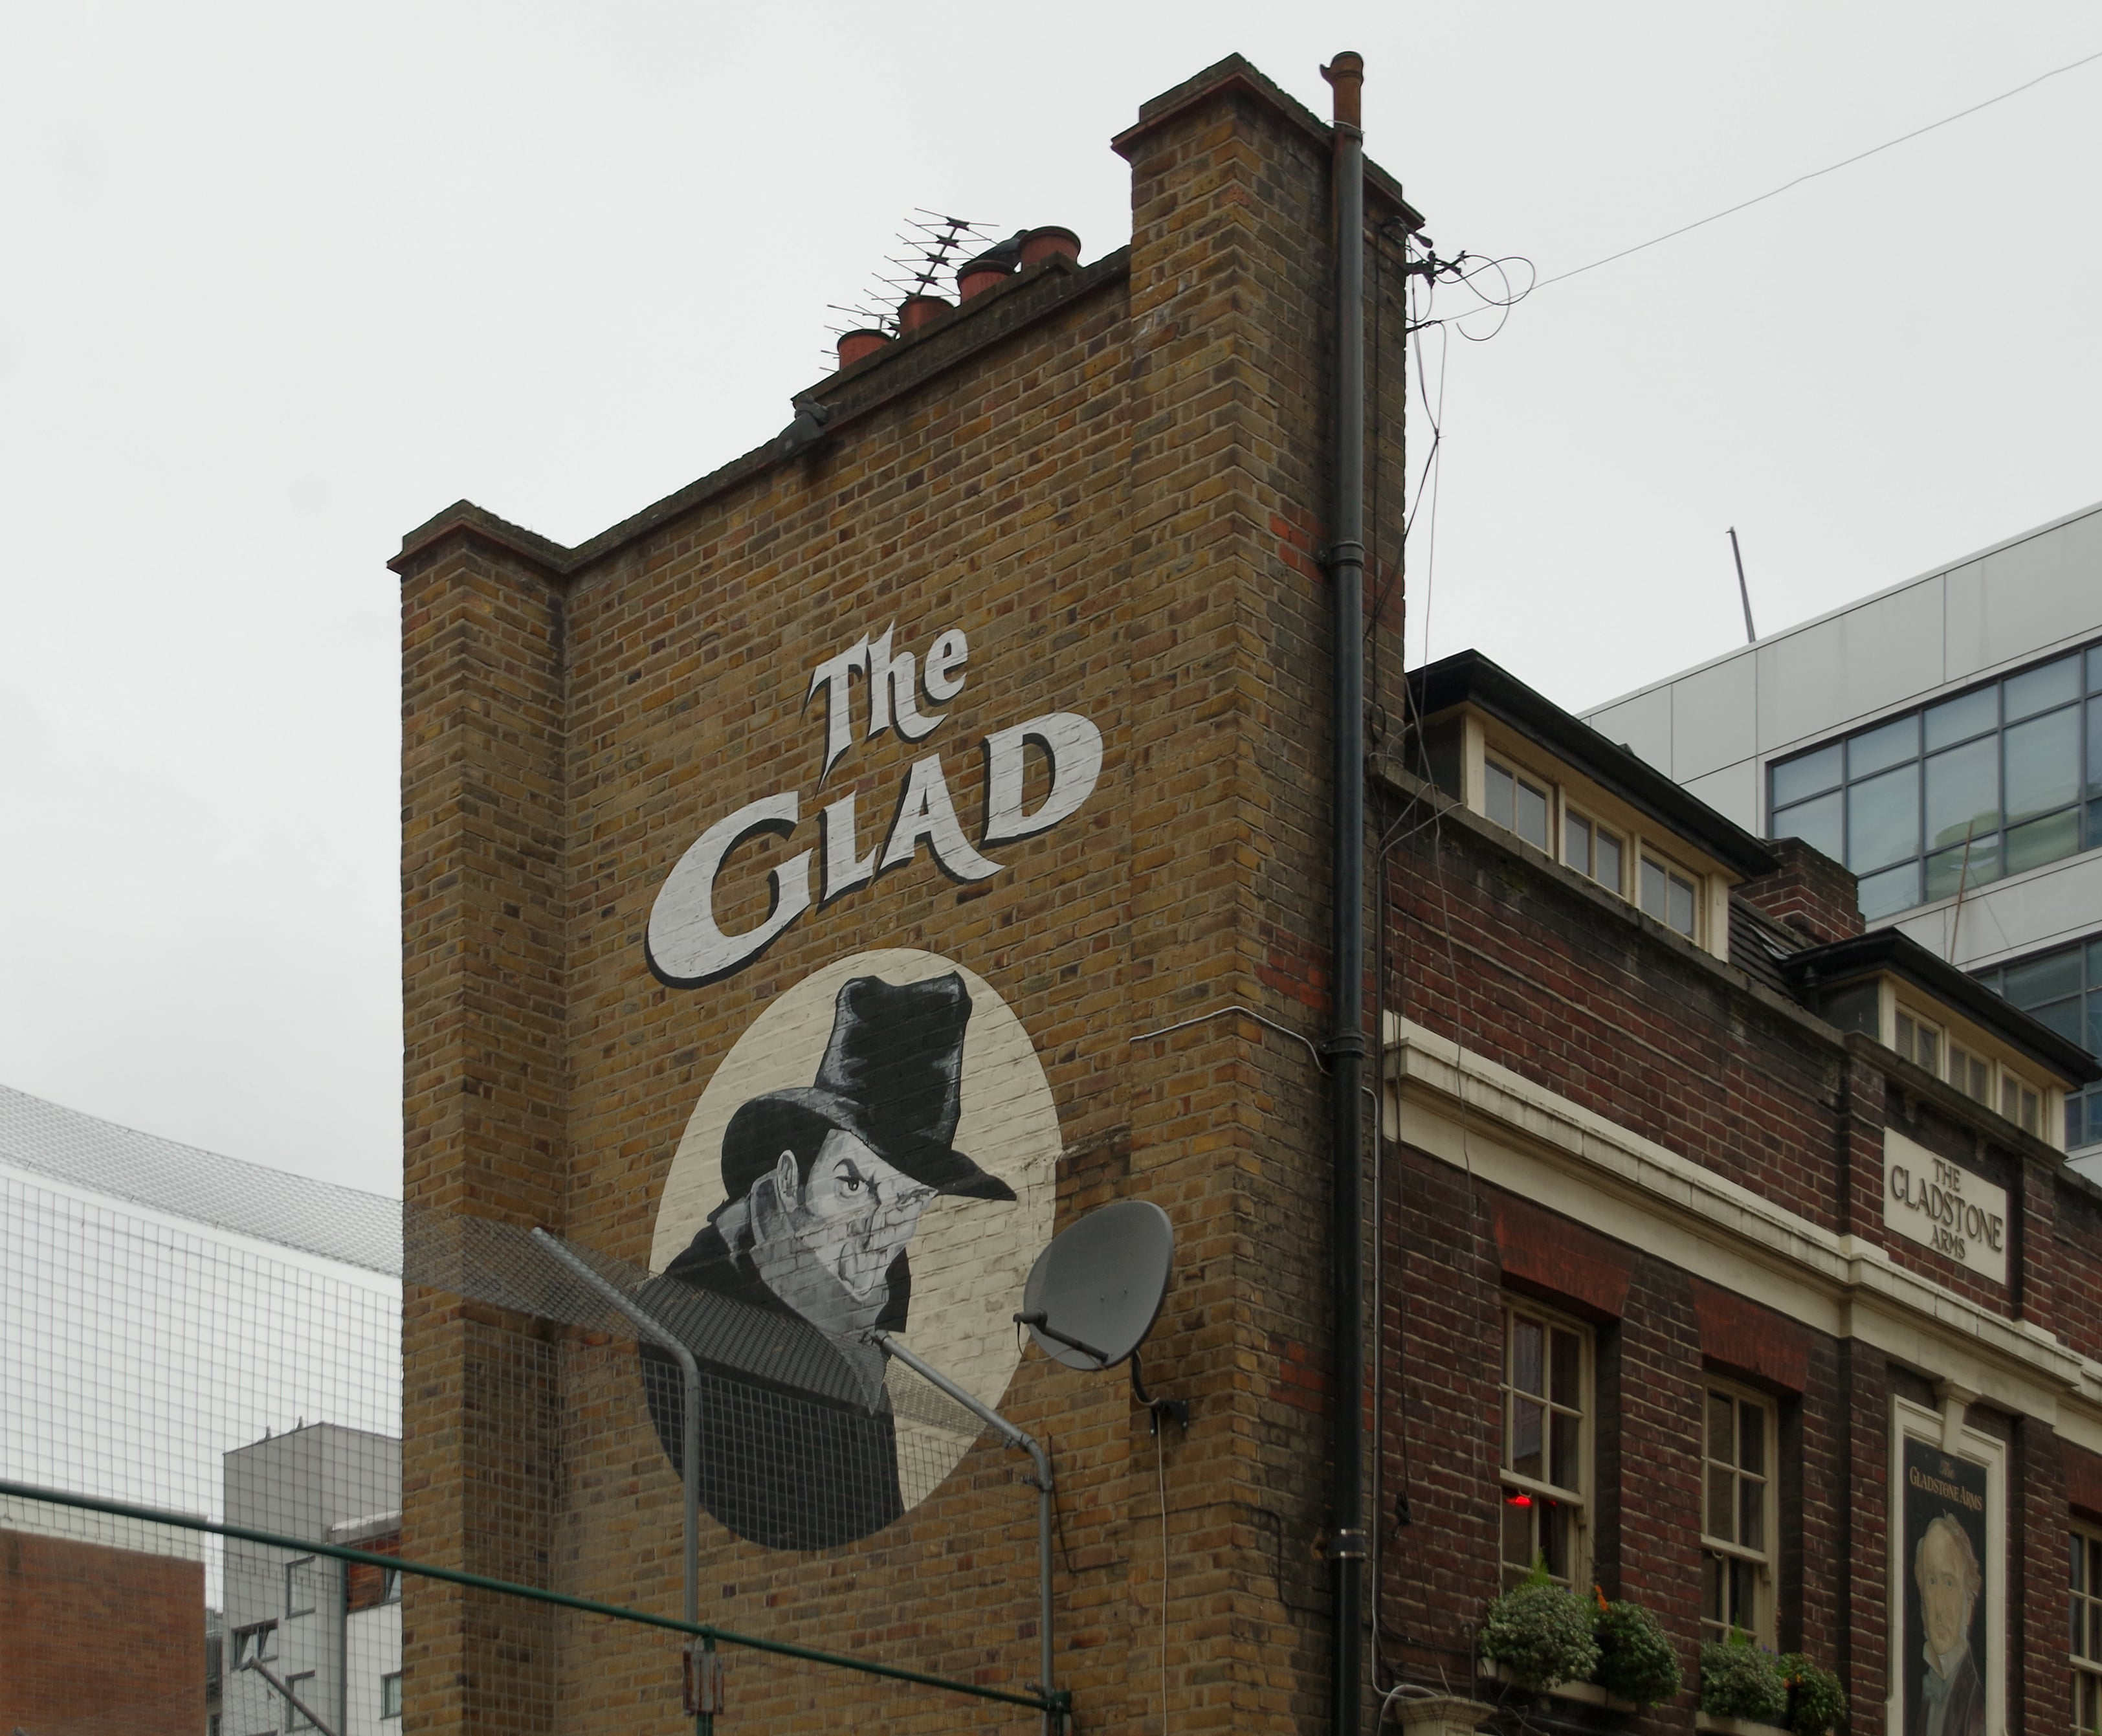 """For an authentic British ale, the """"Glad"""" is an excellent place to visit in London"""